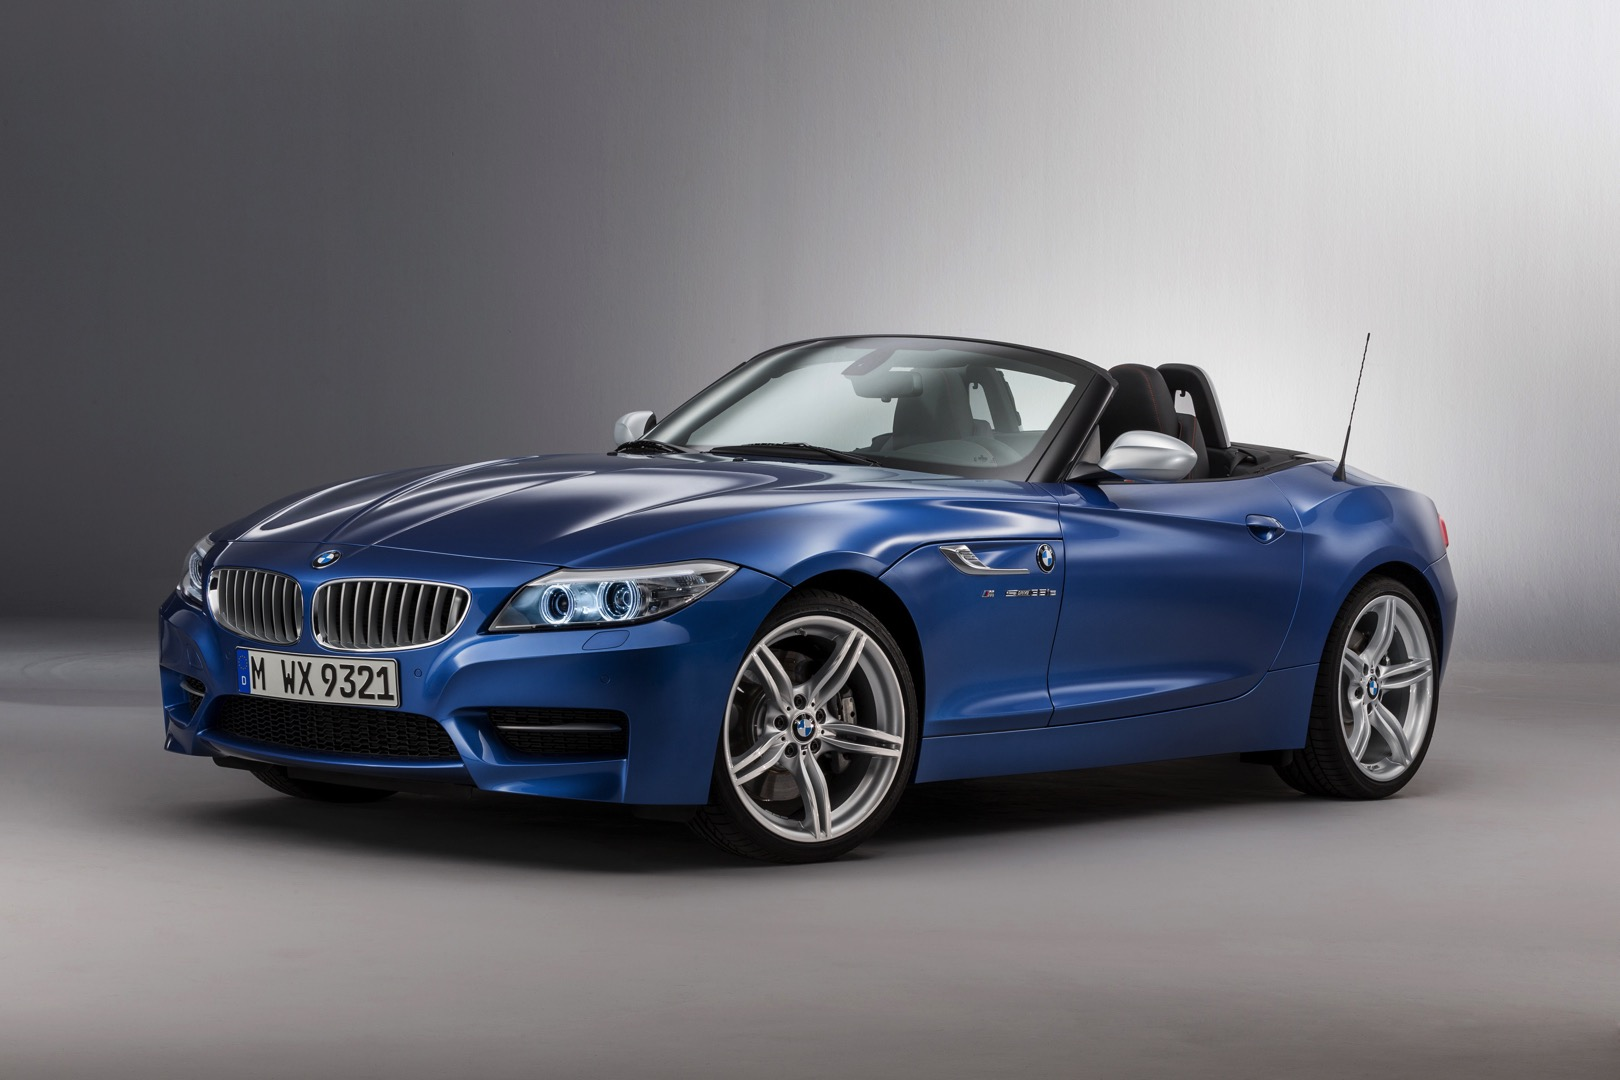 New Colors Available For The Bmw Range Starting The Second